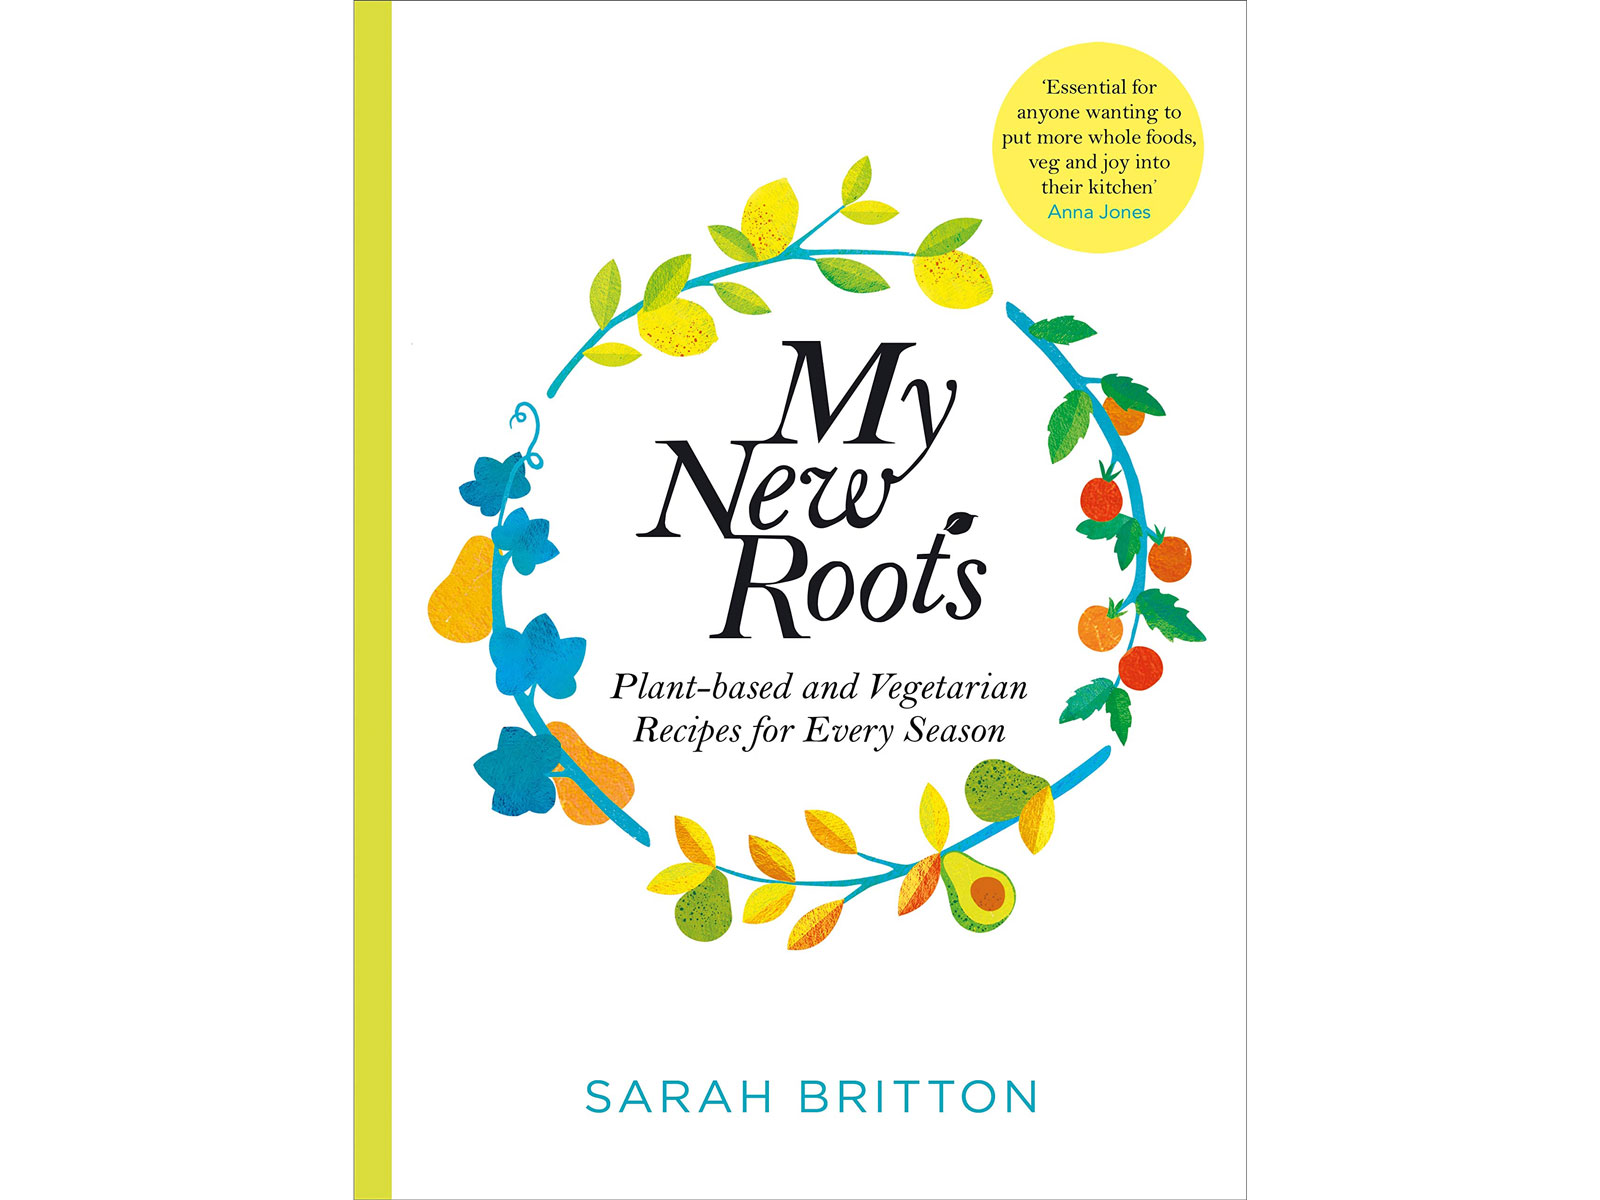 My New Roots by Sarah Britton